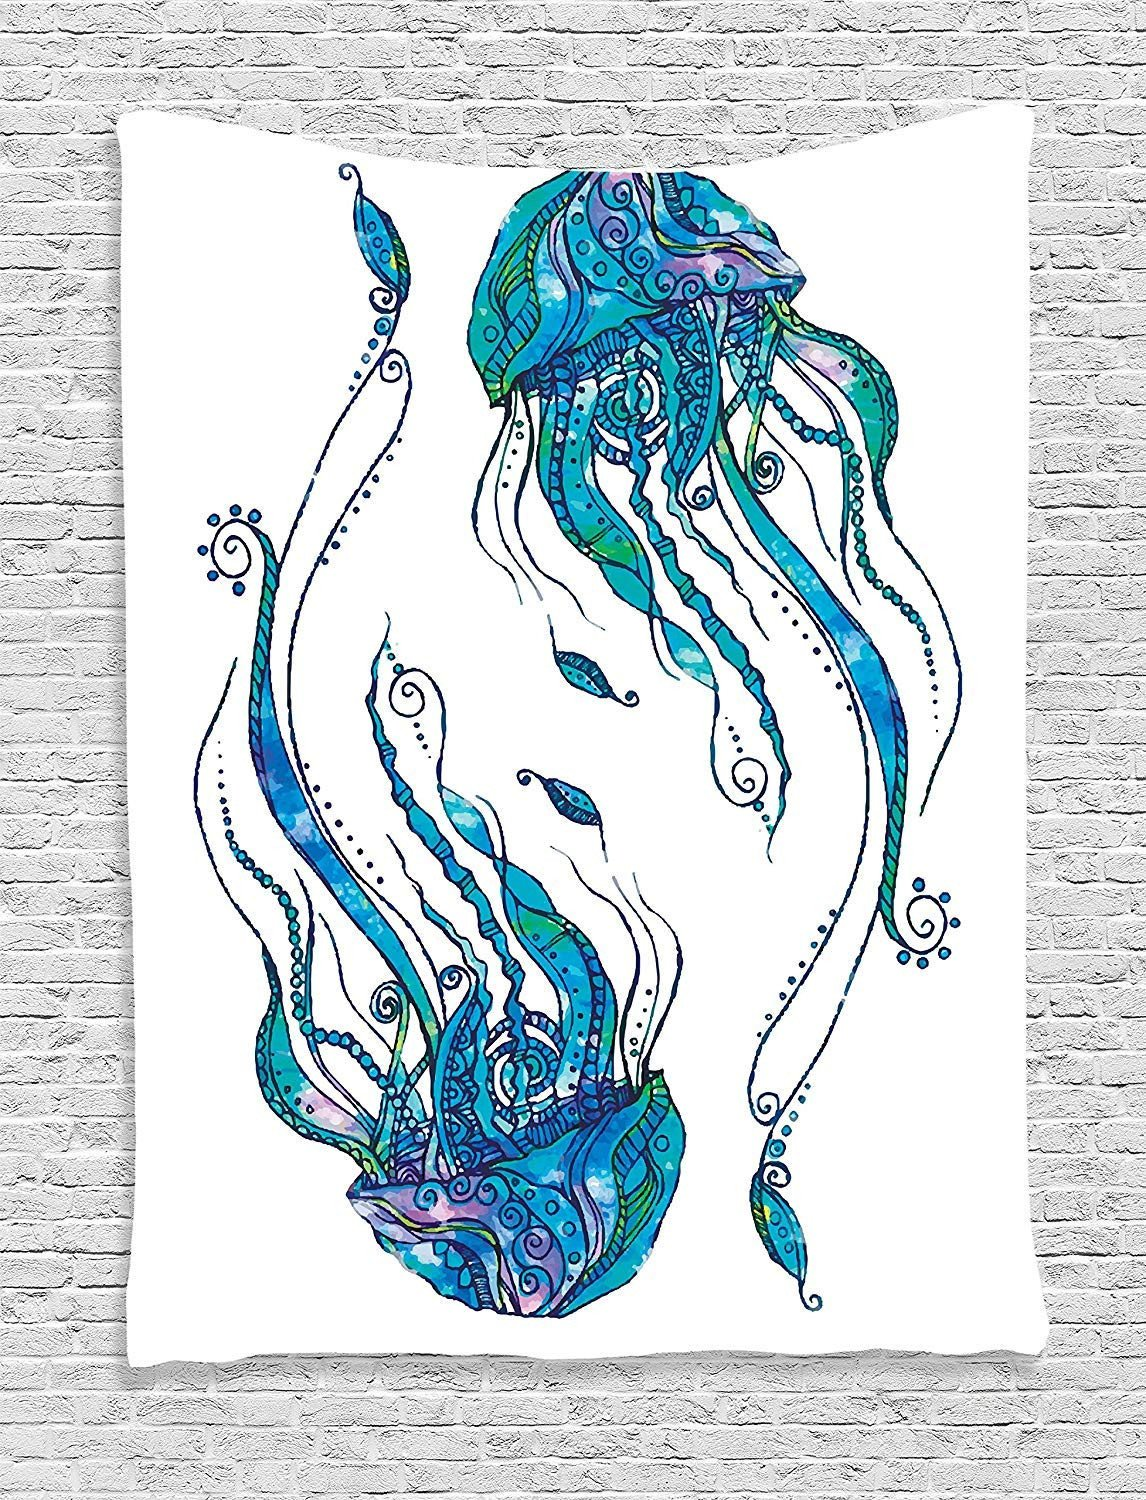 Beach theme Bedroom Decor Awesome Ambesonne Jellyfish Decor Collection Jellyfish Shaped with ornamental Patterns Boho Style Beach themed Aqua Art Bedroom Living Room Dorm Wall